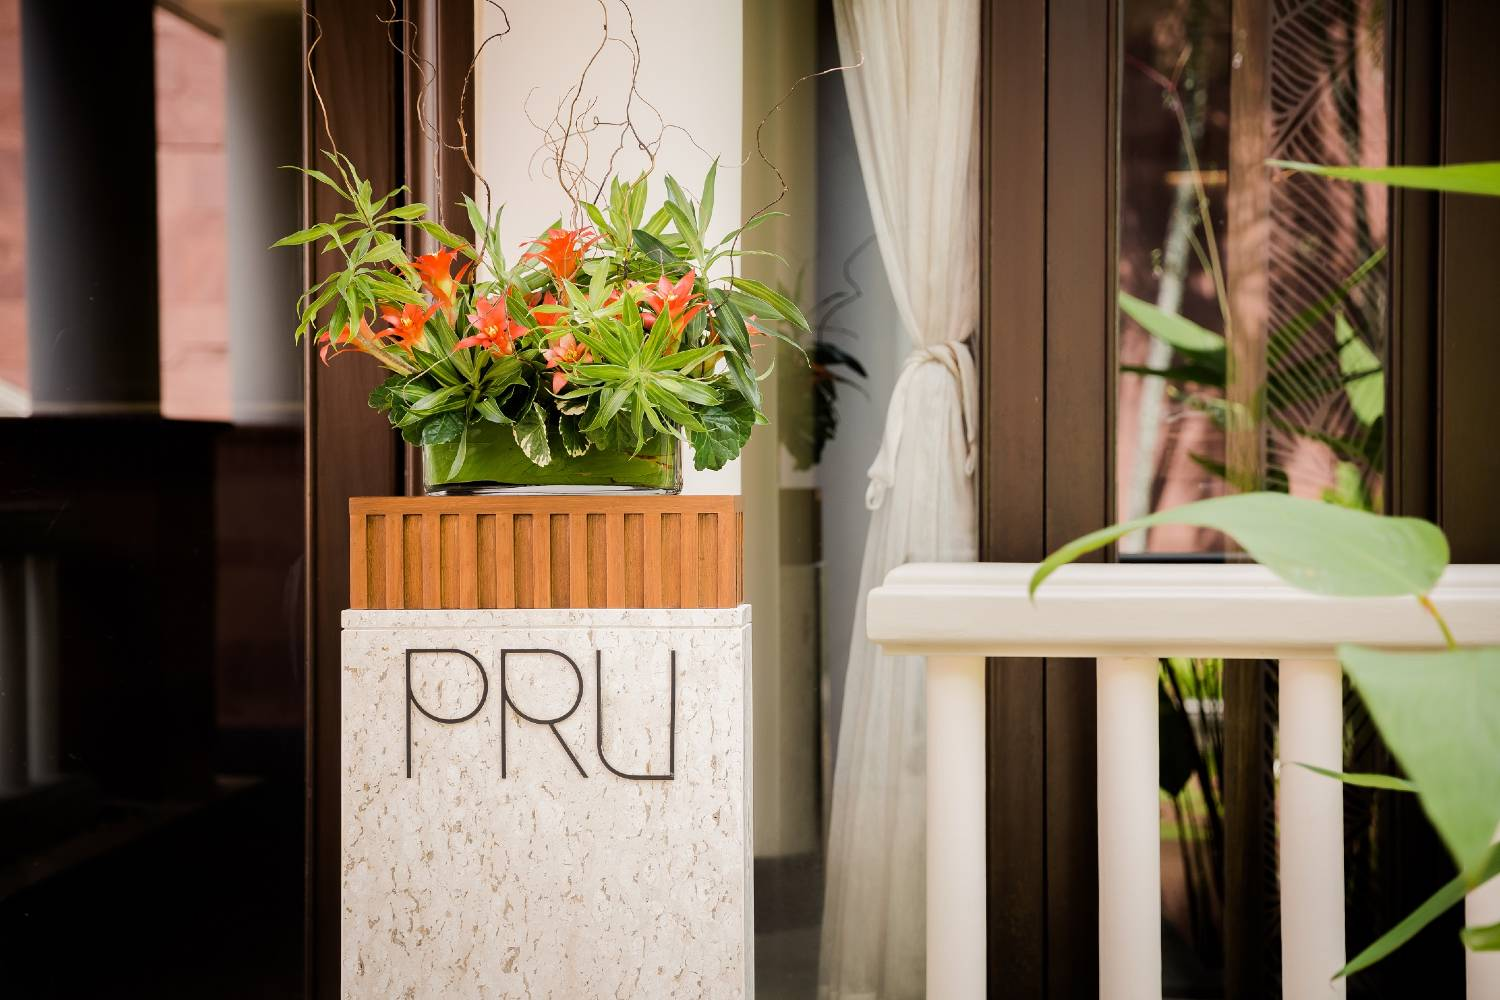 PRU Restaurant in Trisara, in the north of Phuket